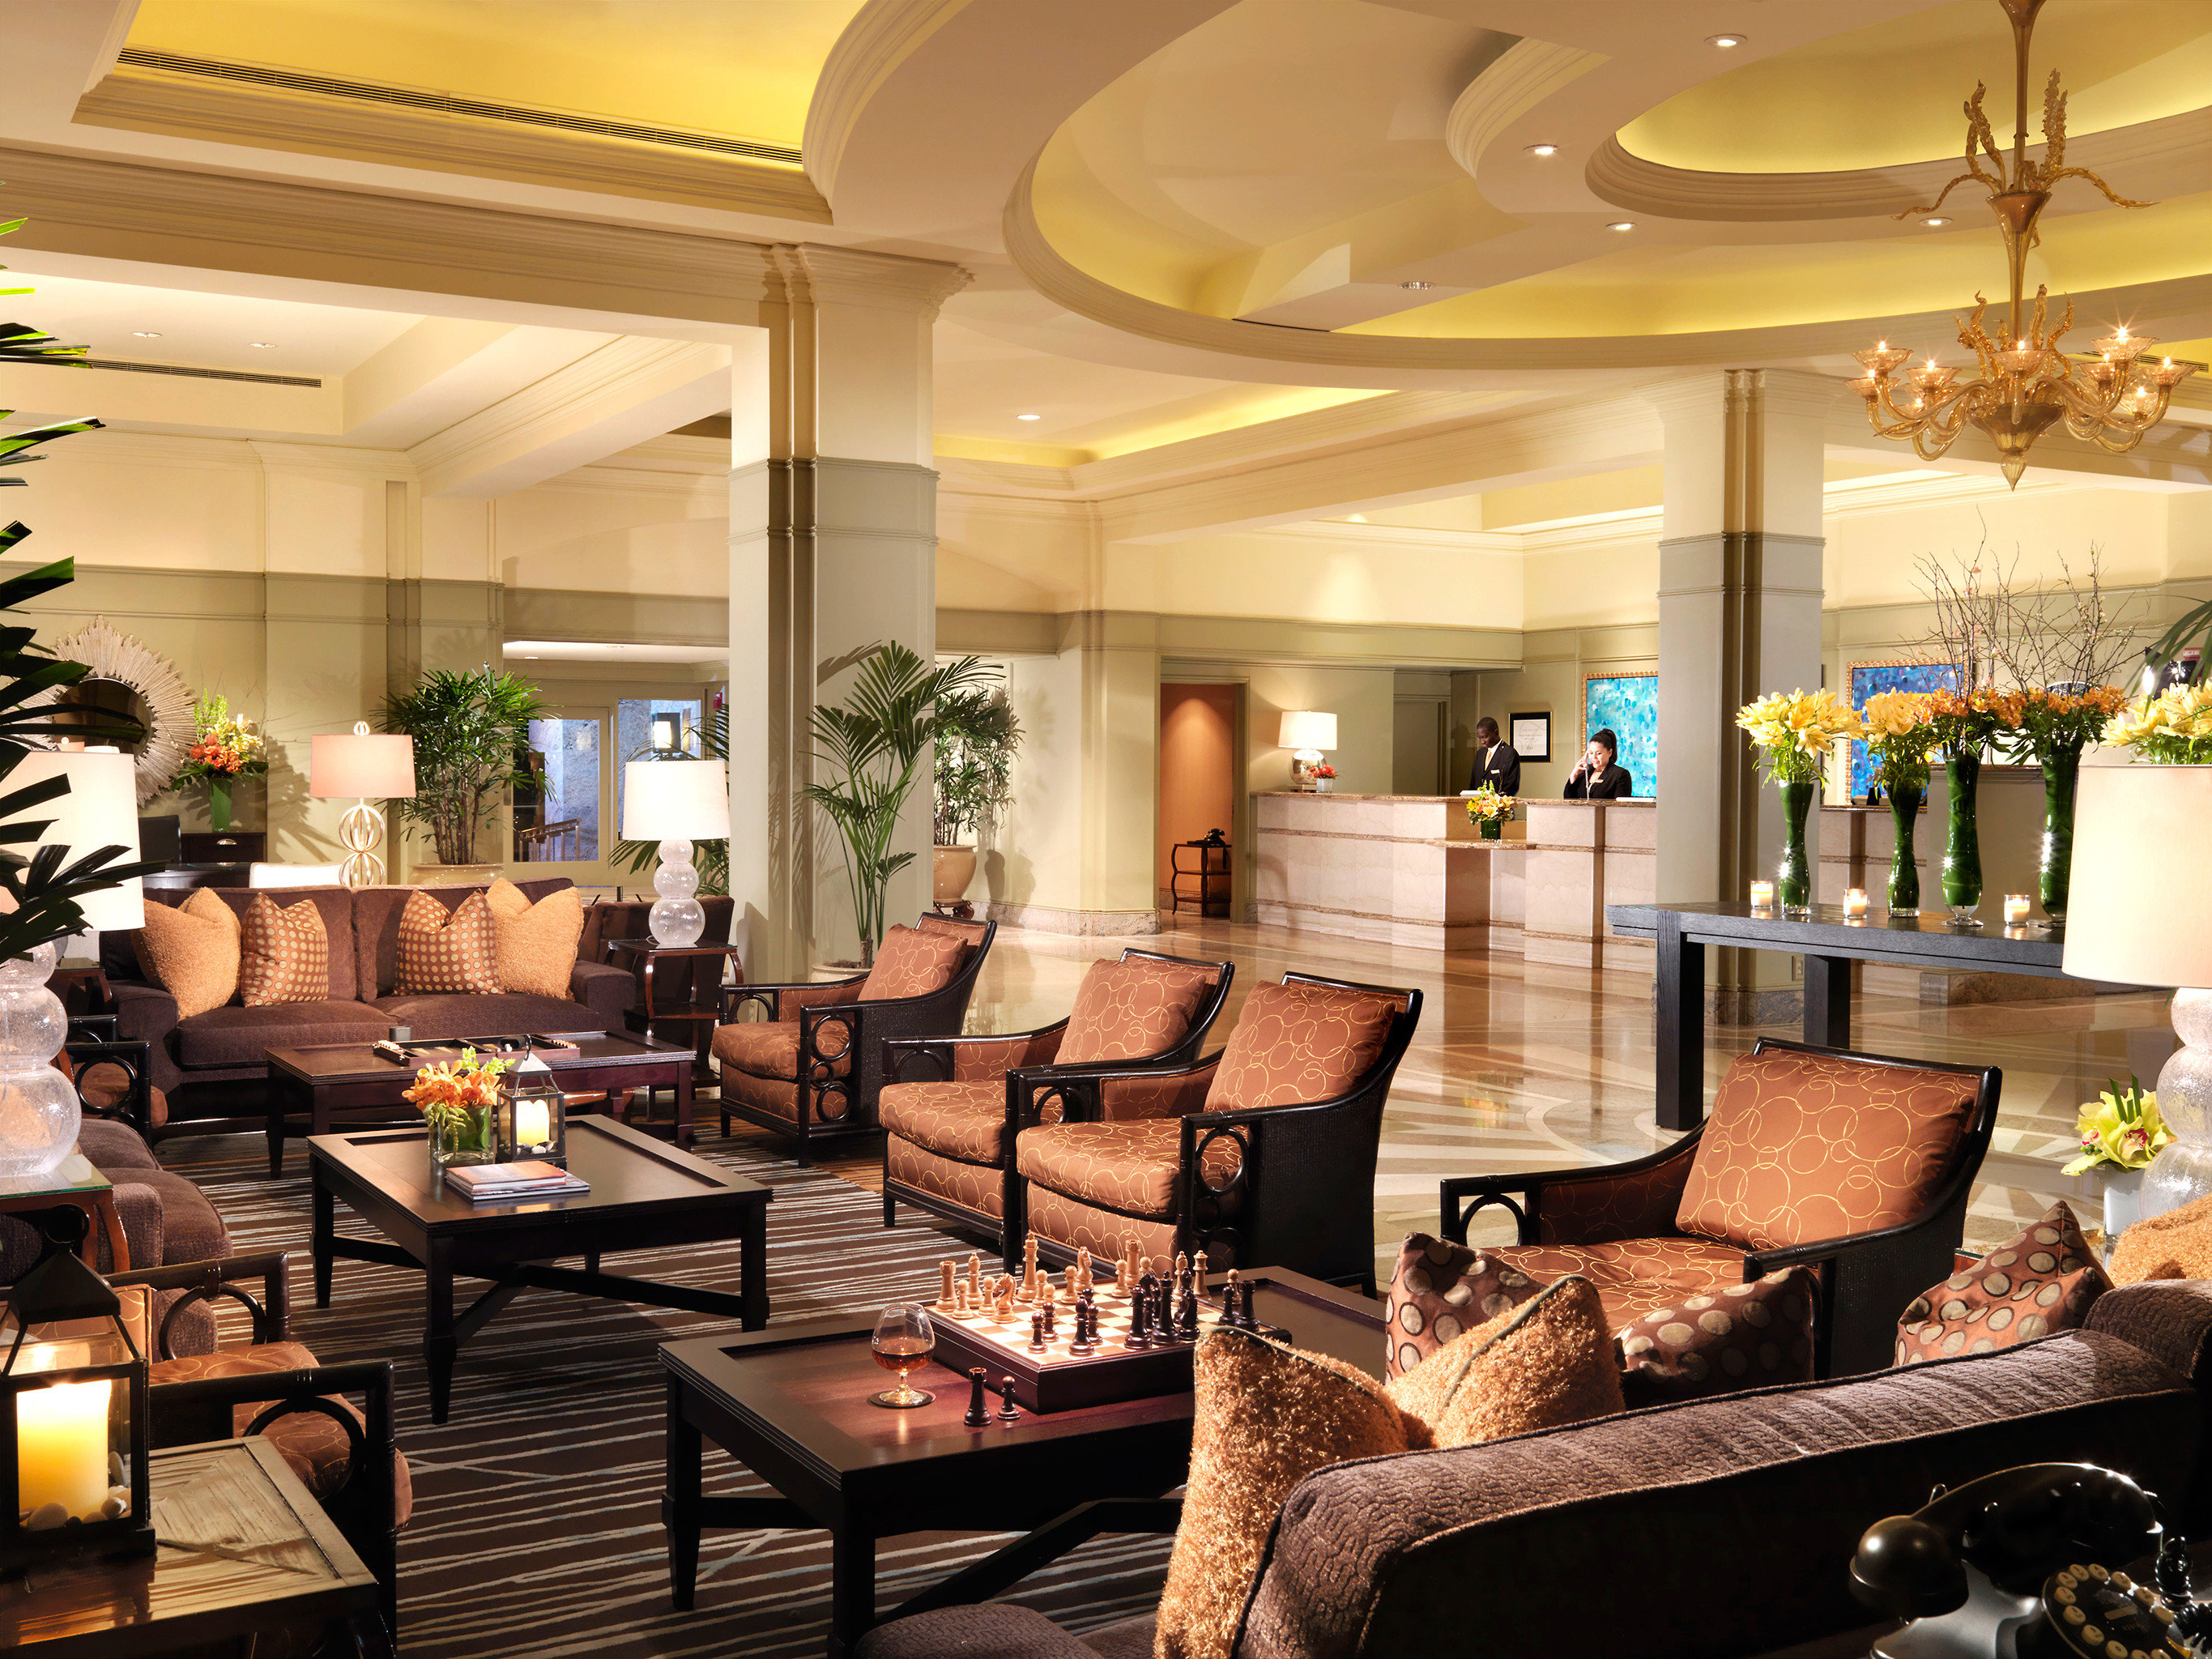 Lounge Luxury Modern Lobby living room restaurant home condominium function hall